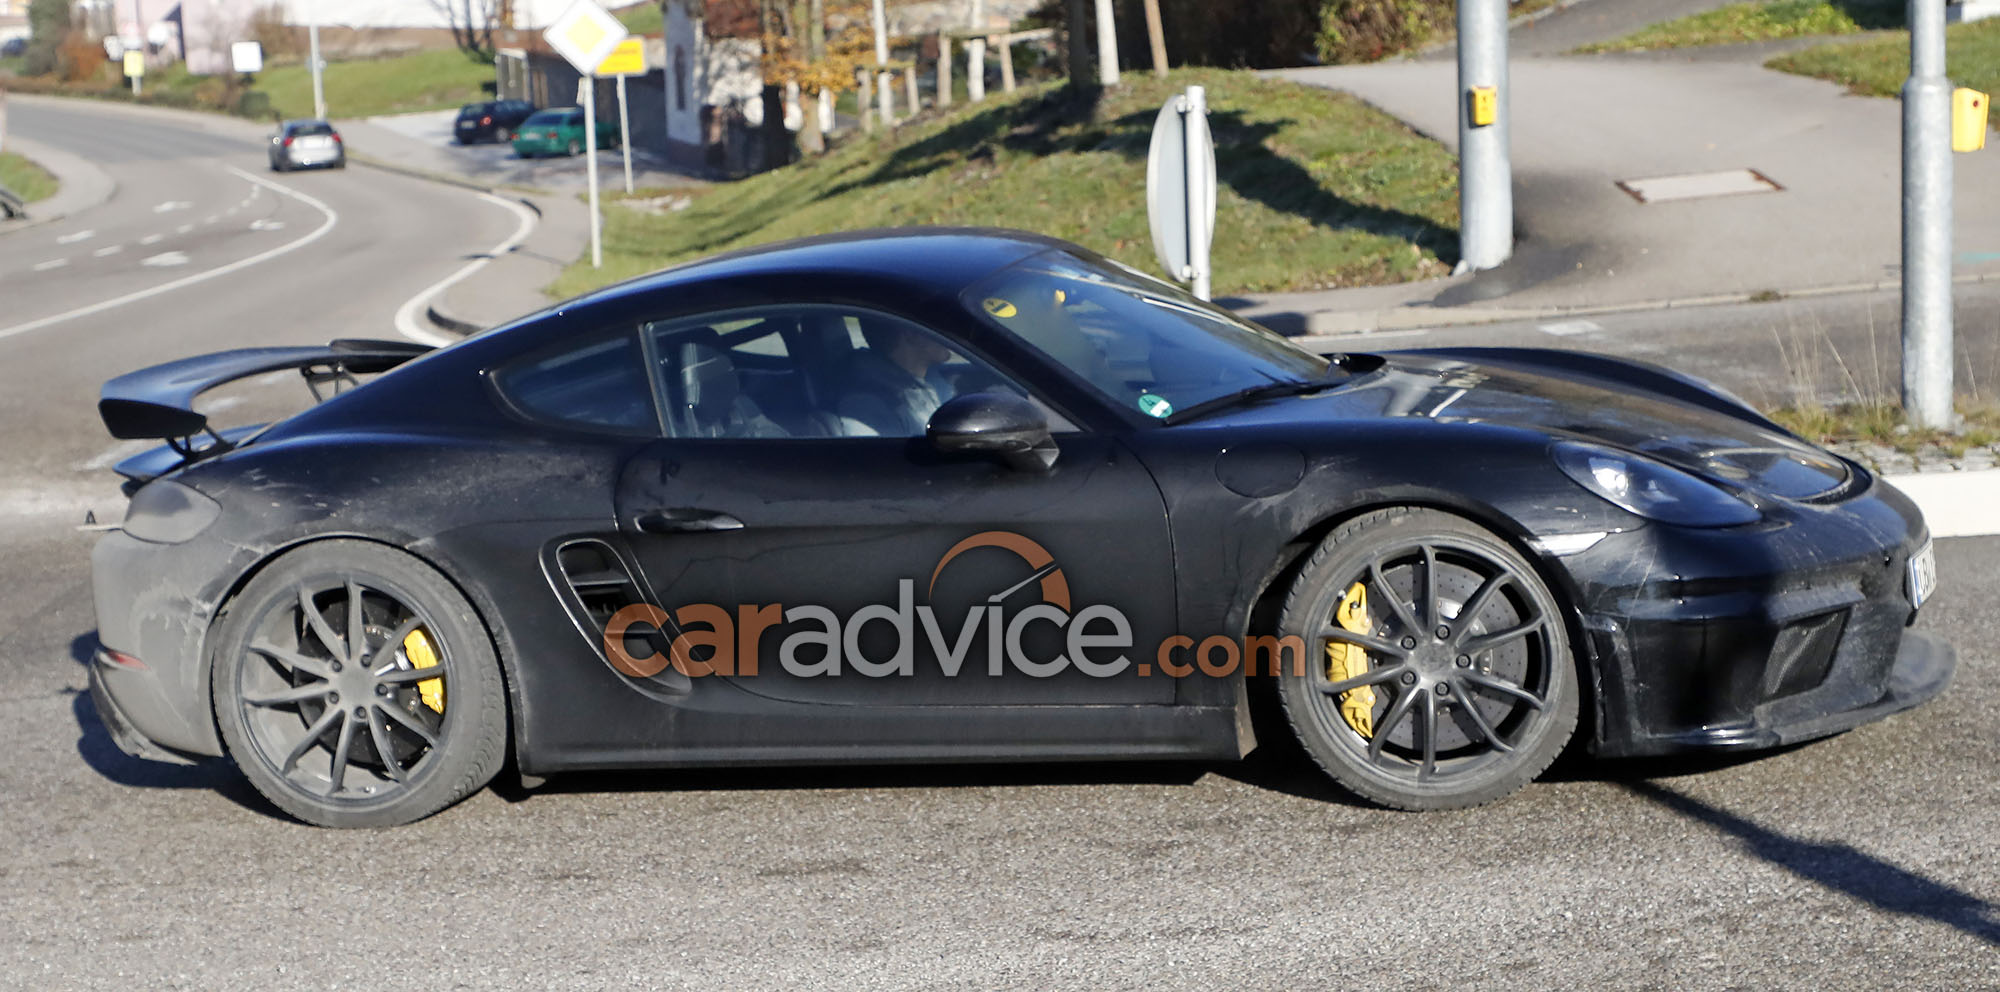 2018 porsche 718 cayman gt4 spied photos 1 of 4. Black Bedroom Furniture Sets. Home Design Ideas